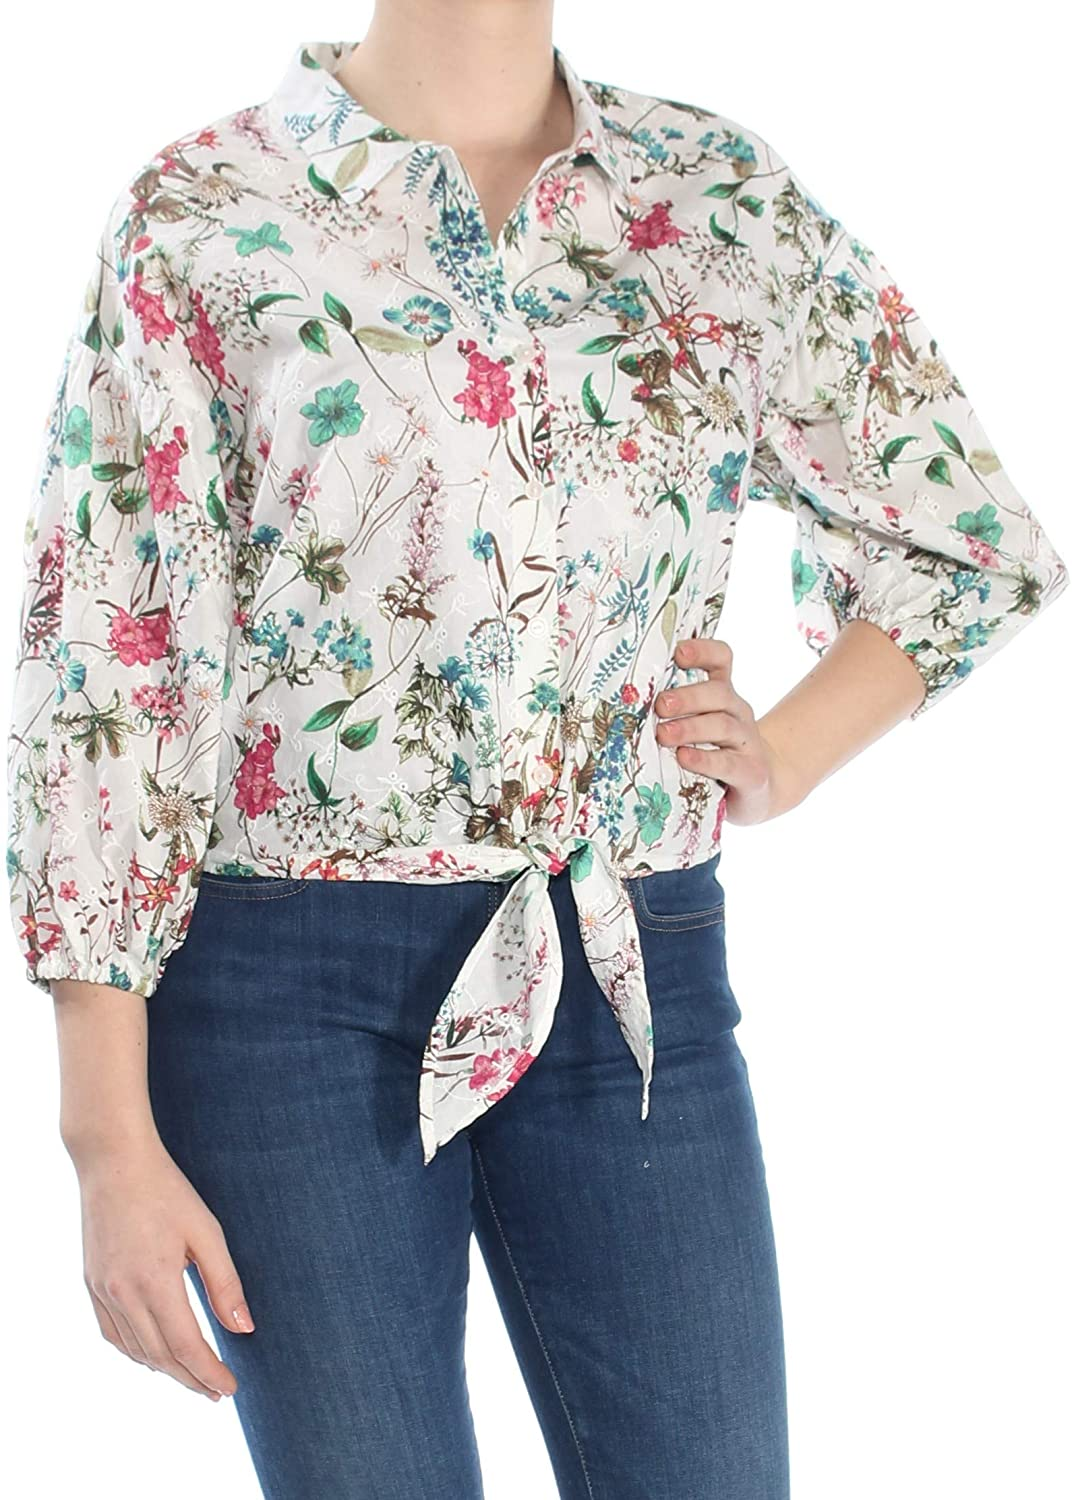 Sanctuary Womens Ivory Floral 3/4 Sleeve Collared Button Up Top Size M